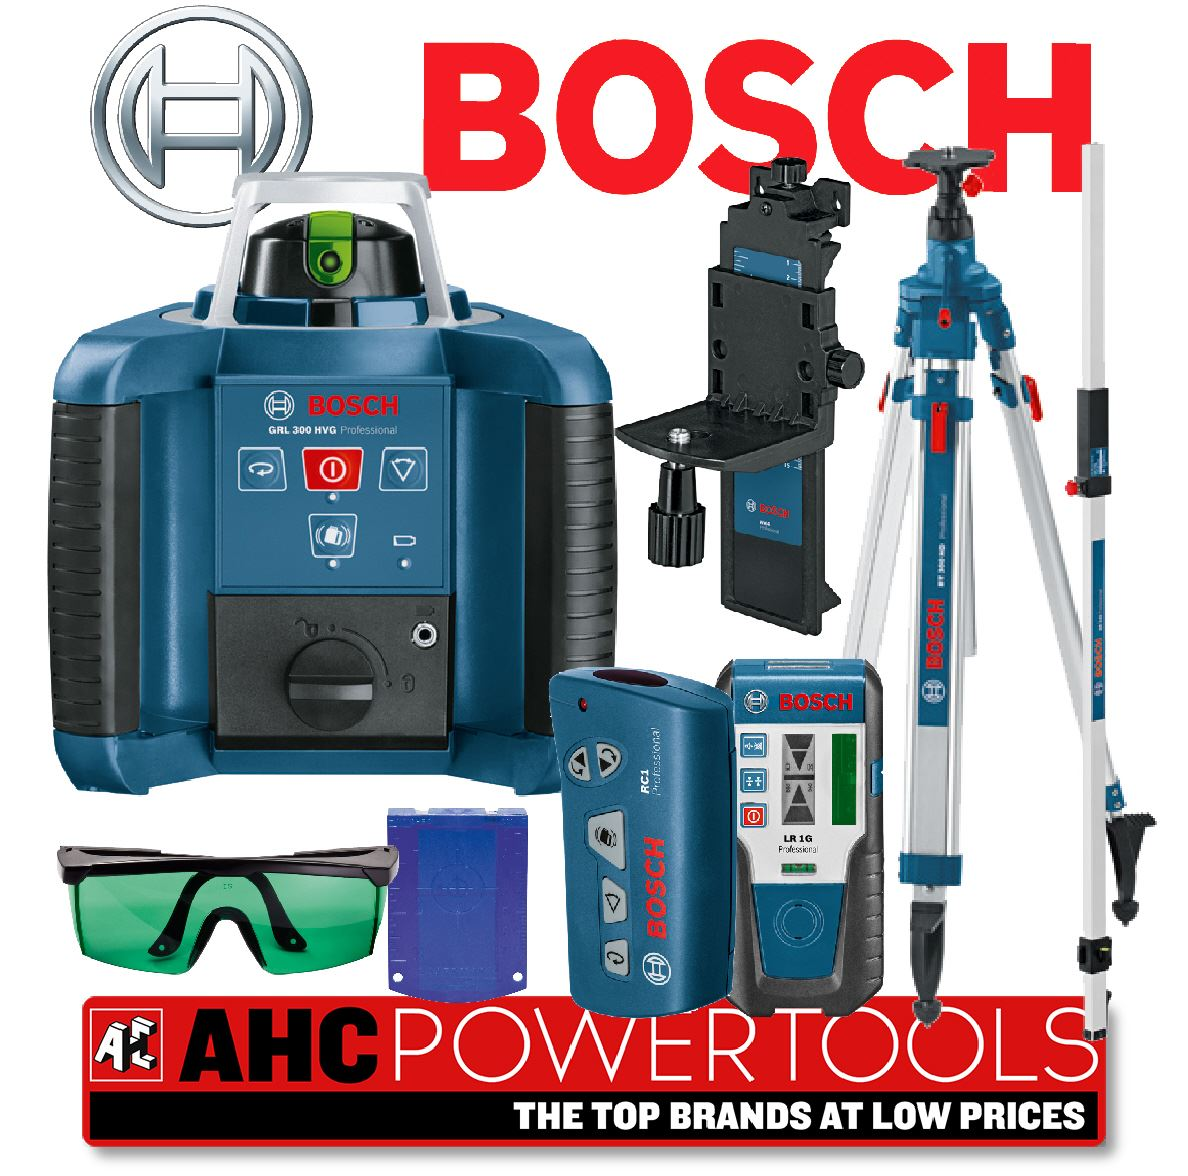 bosch grl 300 hvg pro site rotary laser level kit grl300